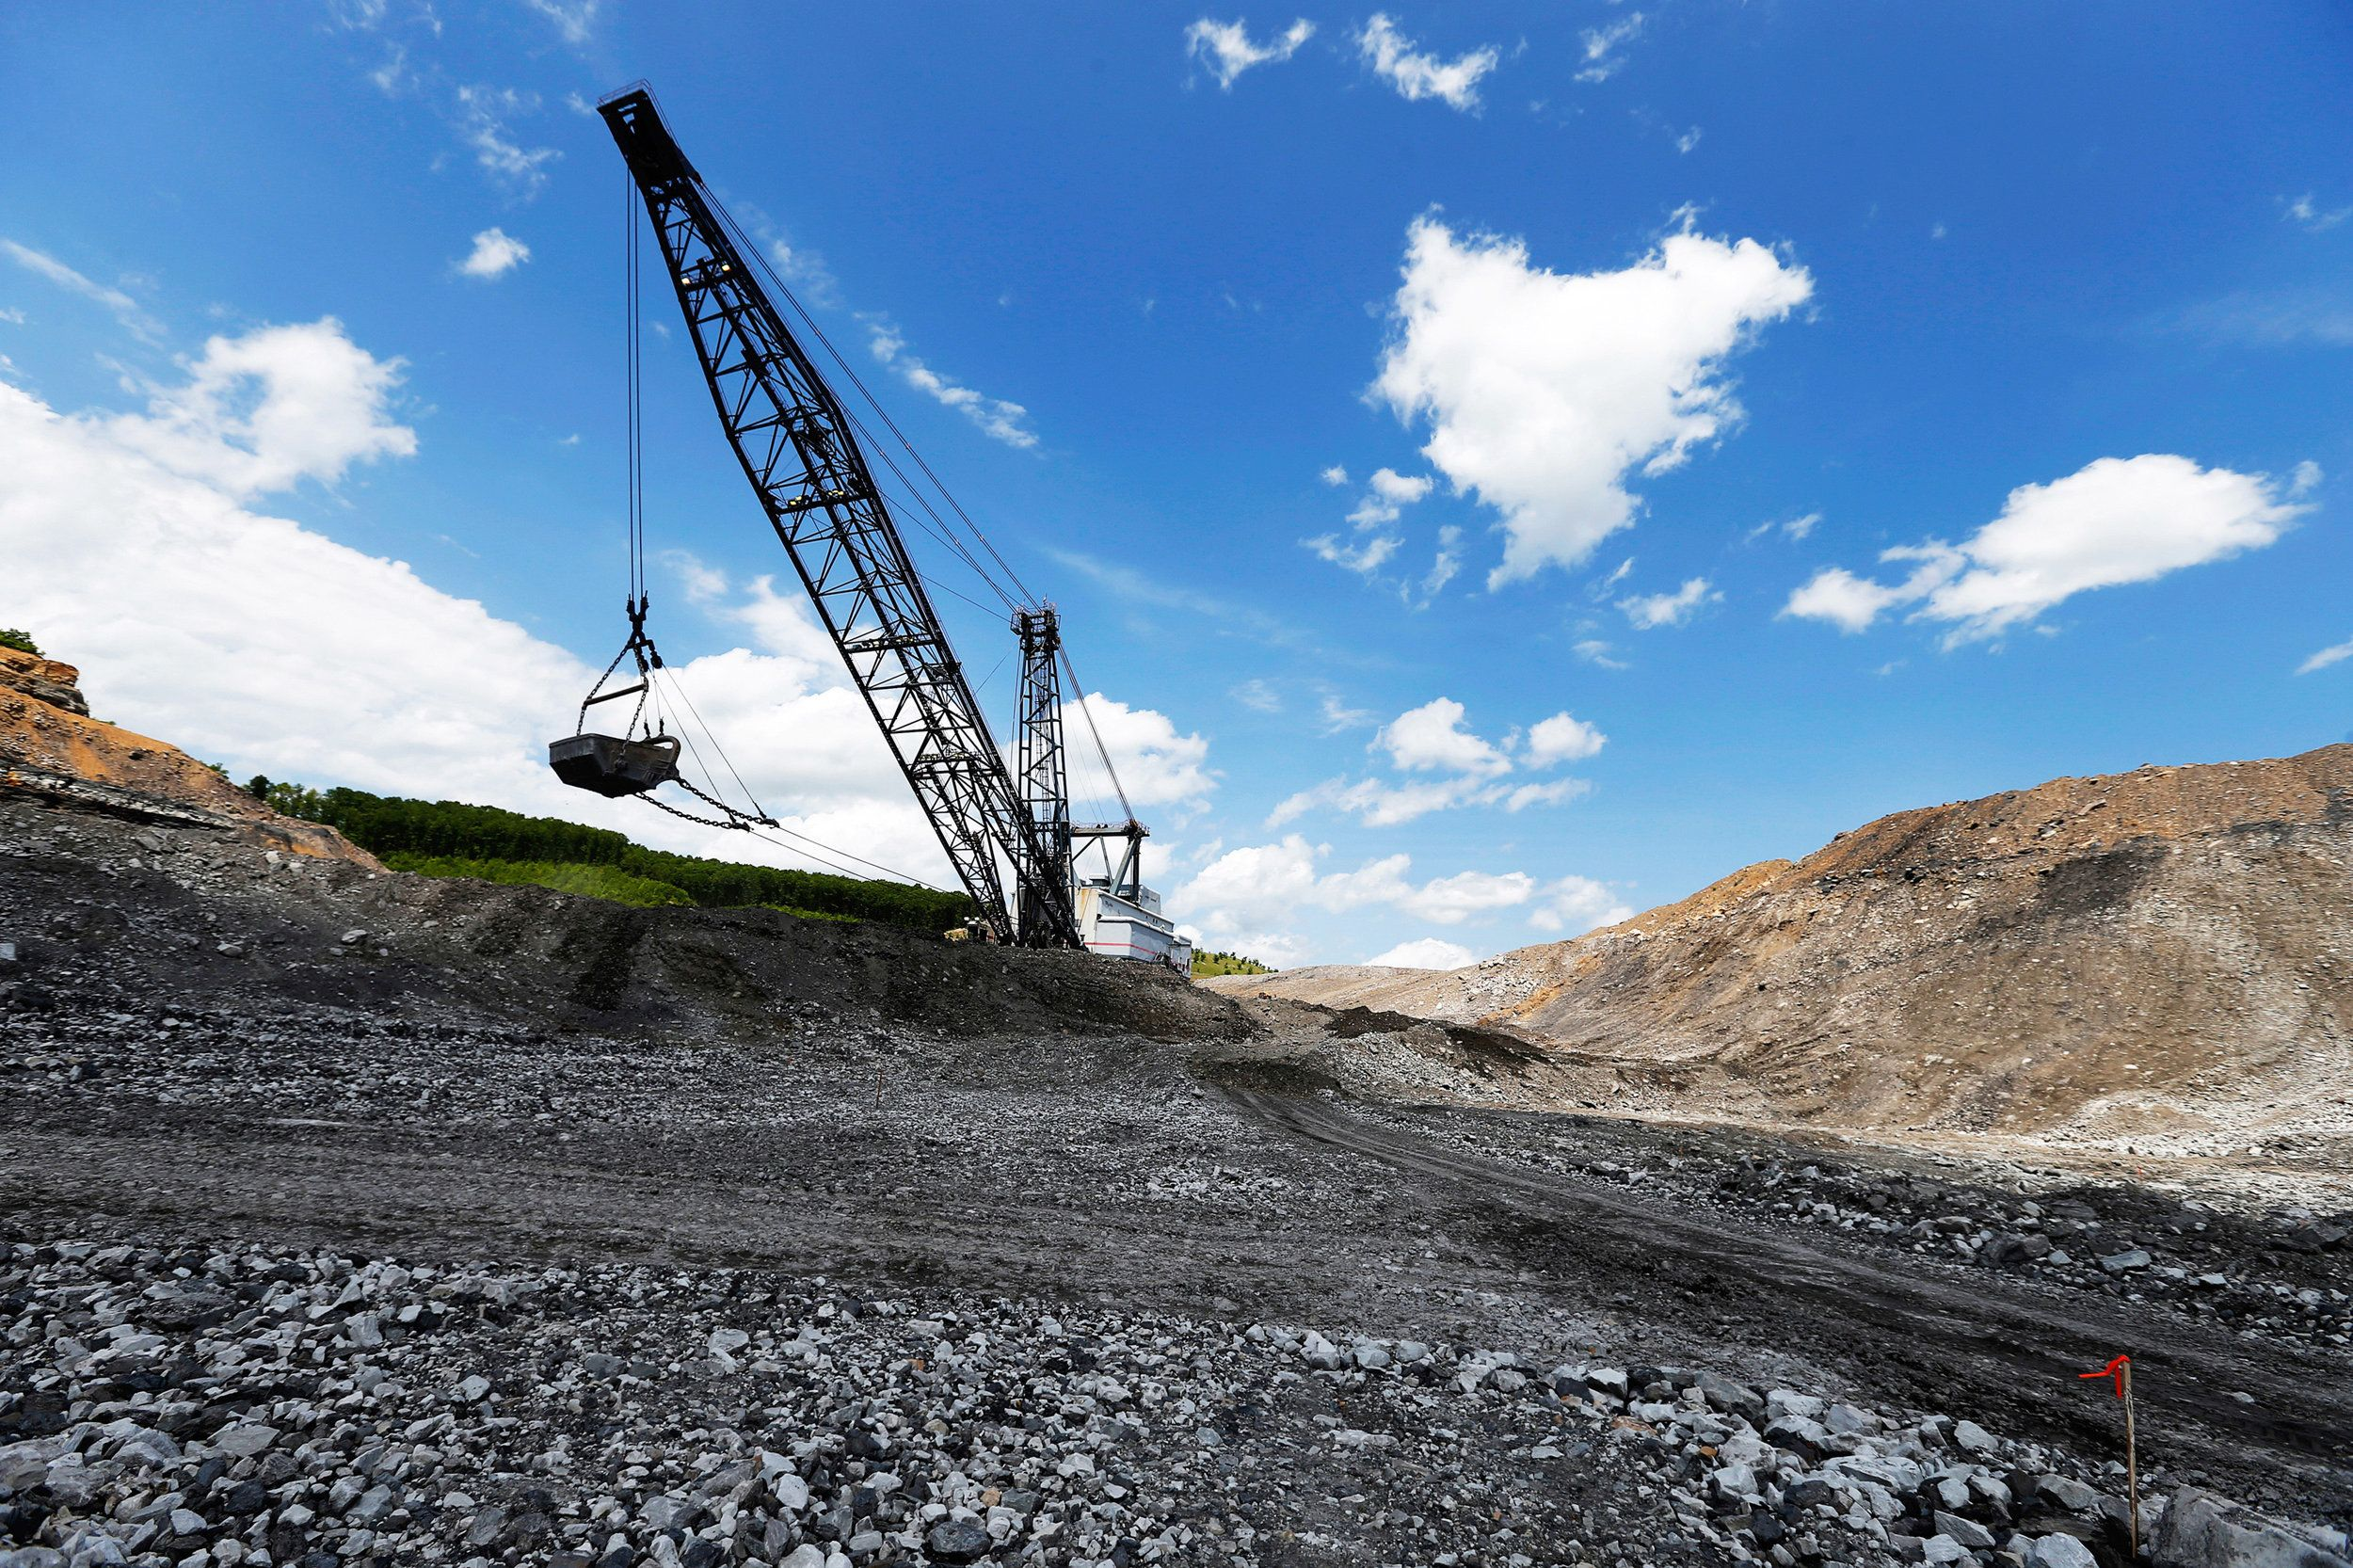 FILE PHOTO --  The massive Big John dragline works to reshape the rocky landscape in some of the last sections to be mined for coal at the Hobet site in Boone County, West Virginia, U.S. May 12, 2016.     REUTERS/Jonathan Ernst/File Photo